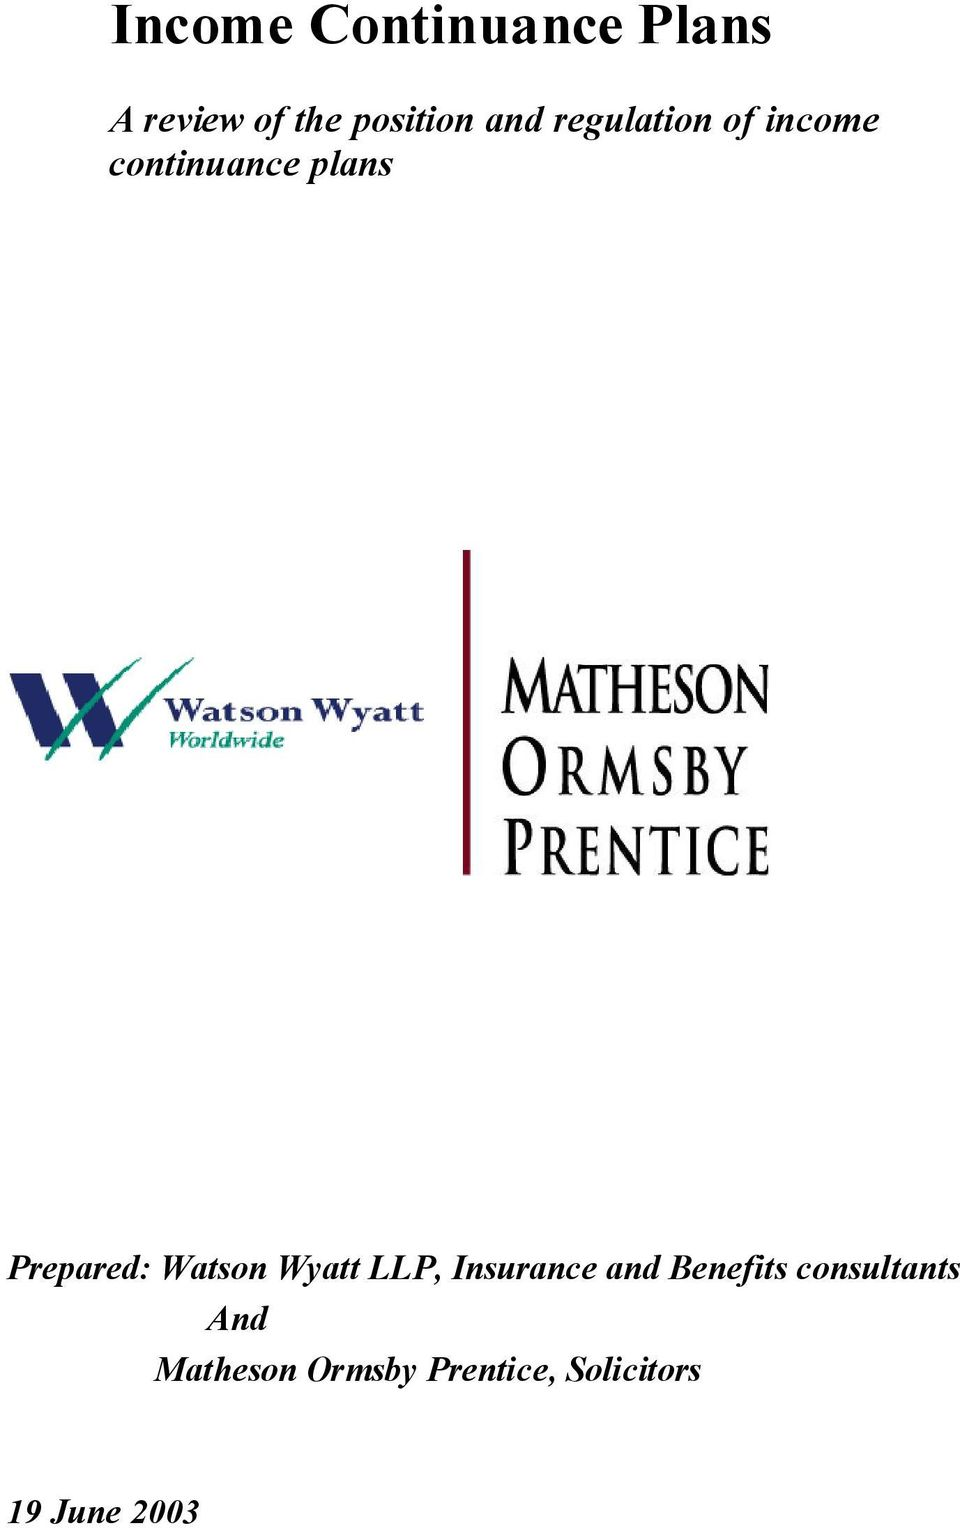 Watson Wyatt LLP, Insurance and Benefits consultants